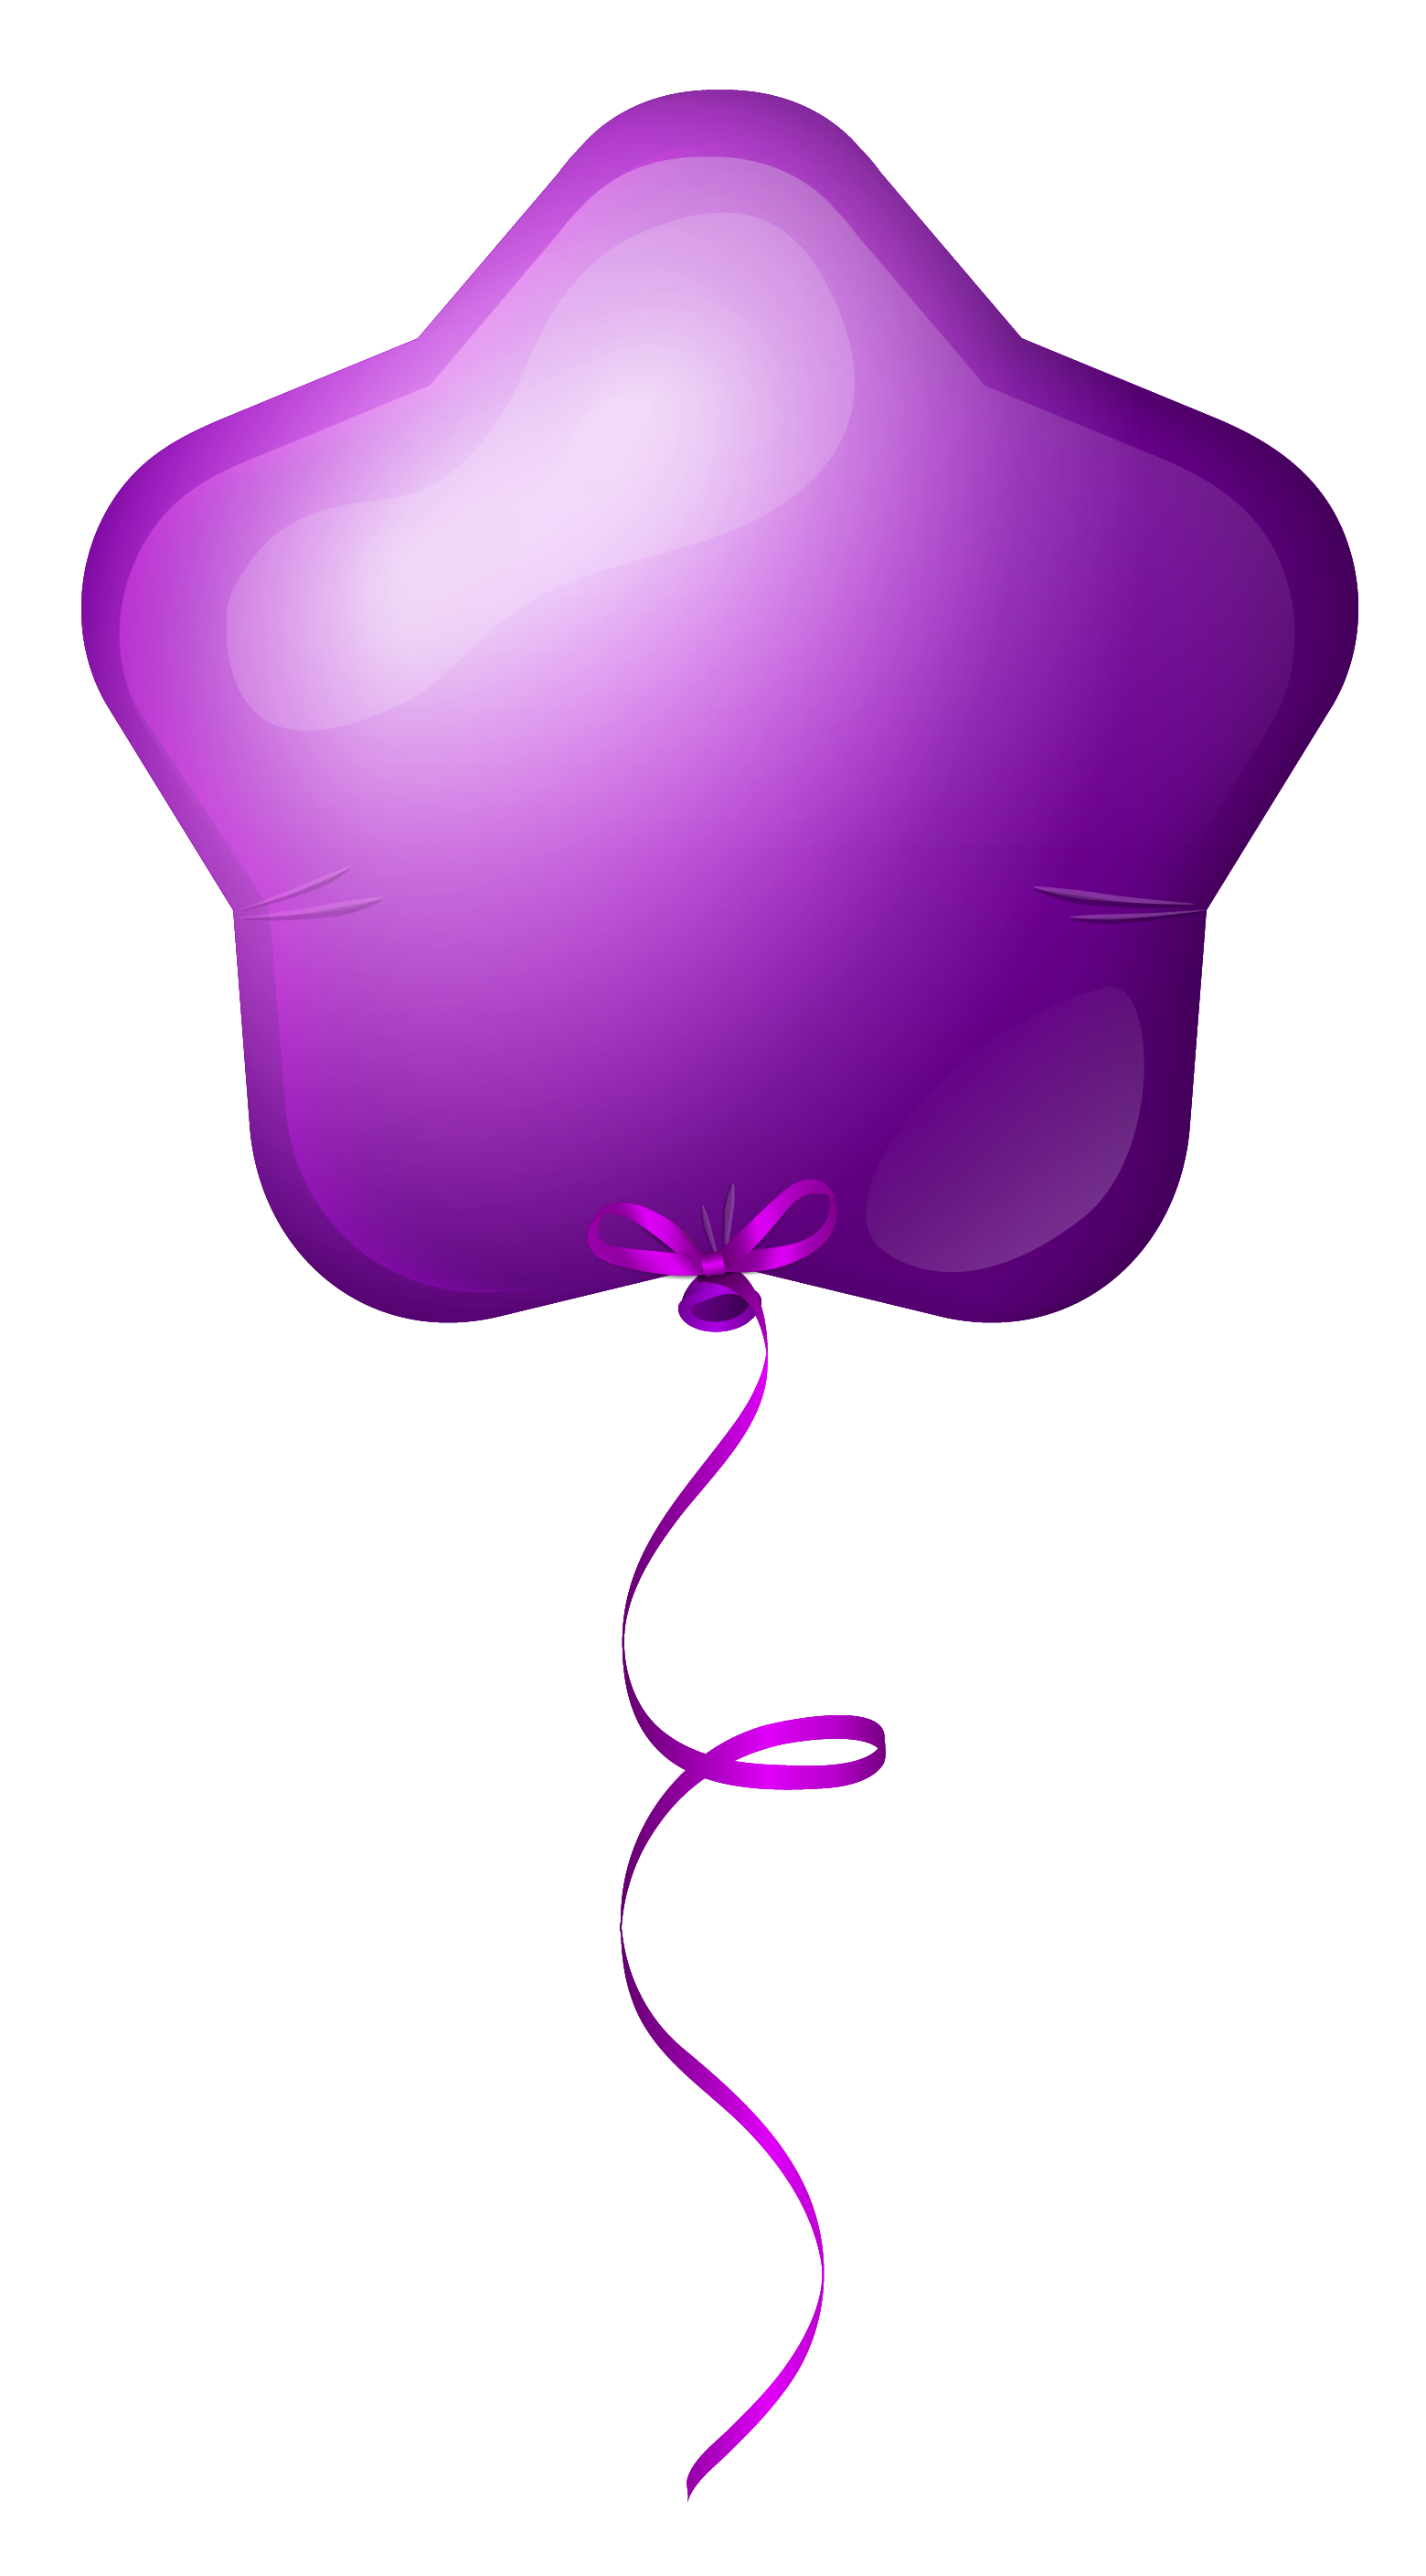 Purple star clipart clip art royalty free library Purple Star Balloon PNG Clipart Image | Gallery Yopriceville - High ... clip art royalty free library